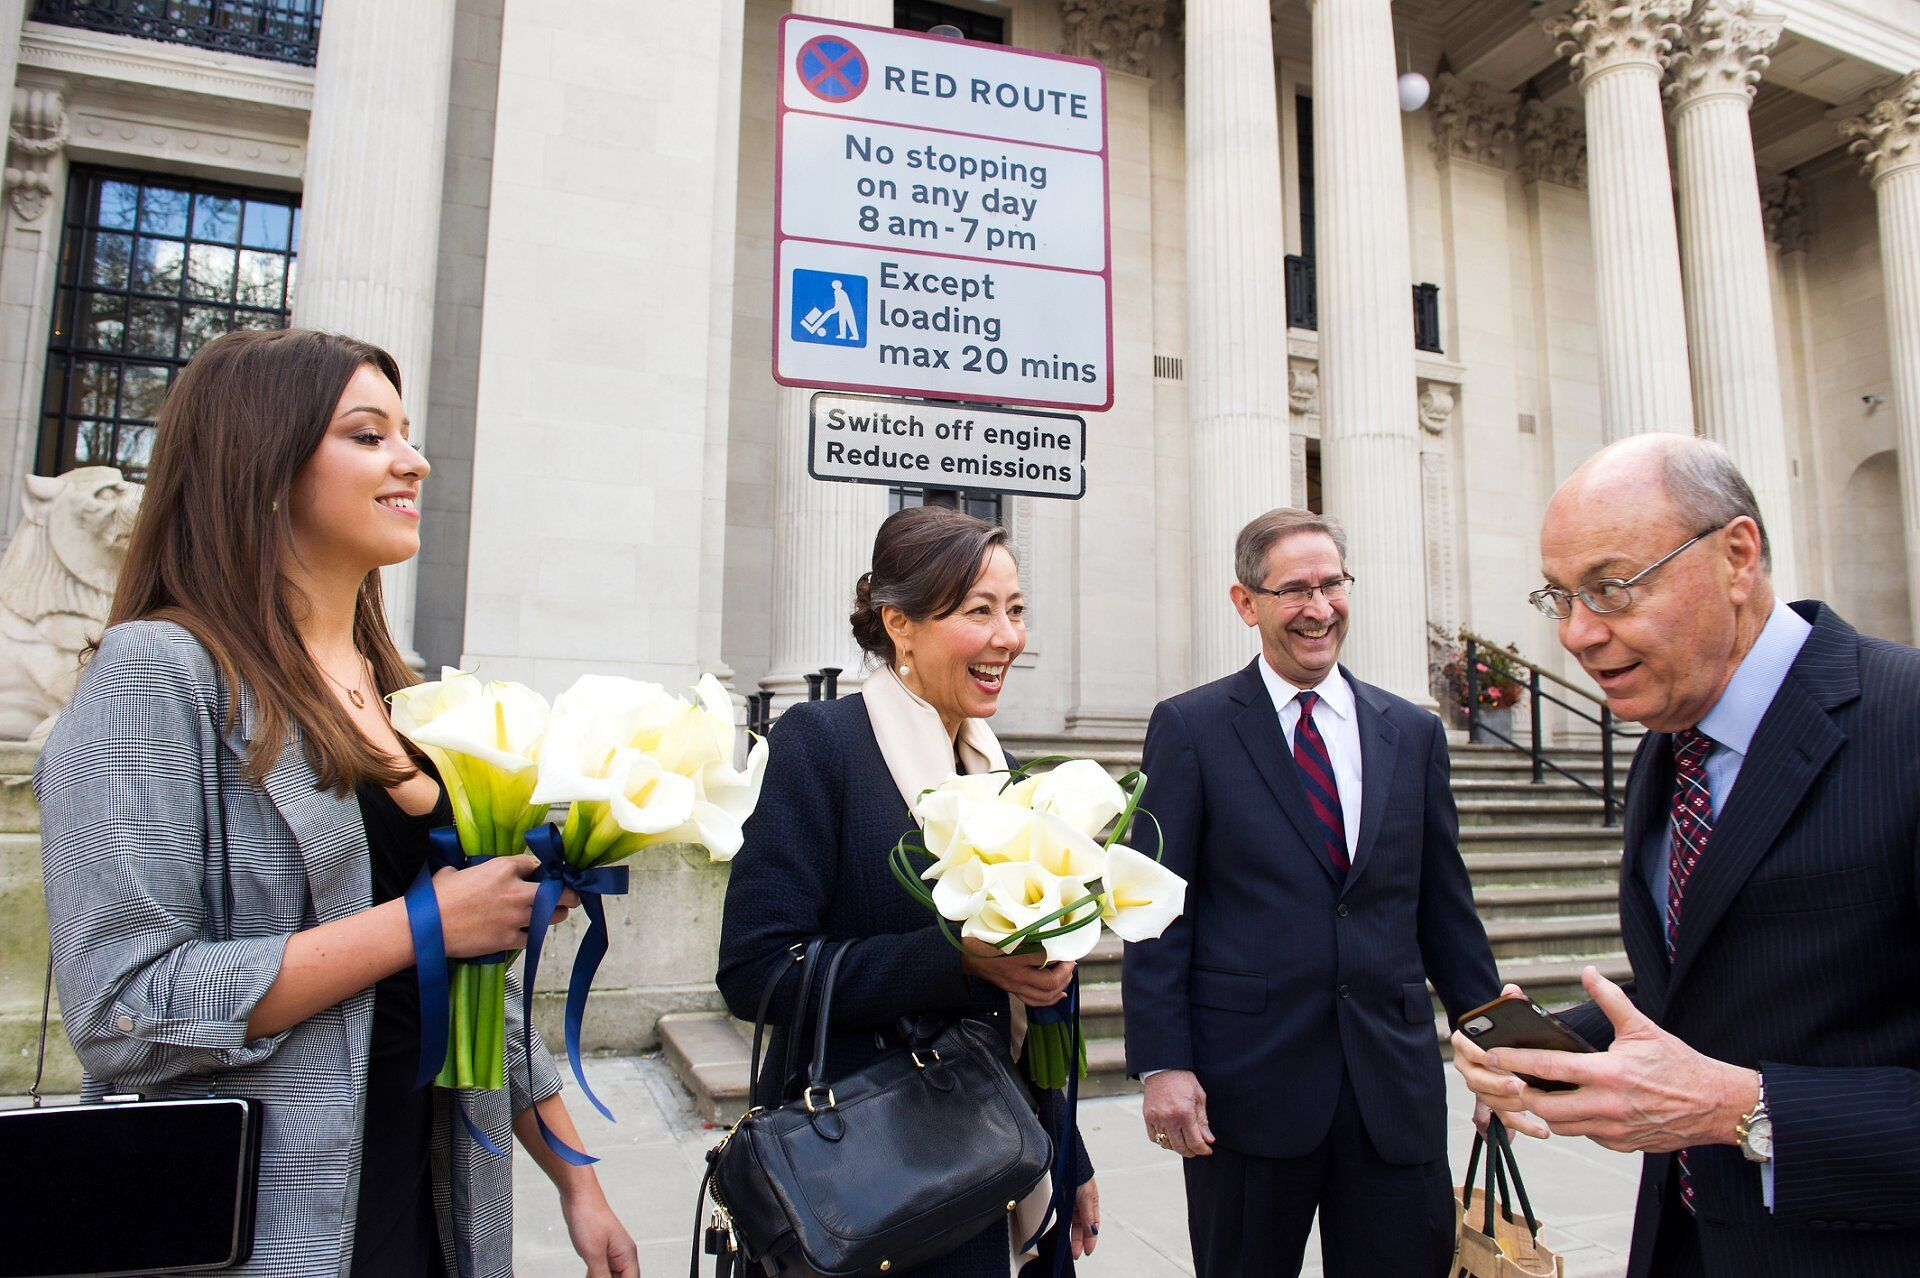 parking at old marylebone town hall on your wedding day is fine up to 20 minutes